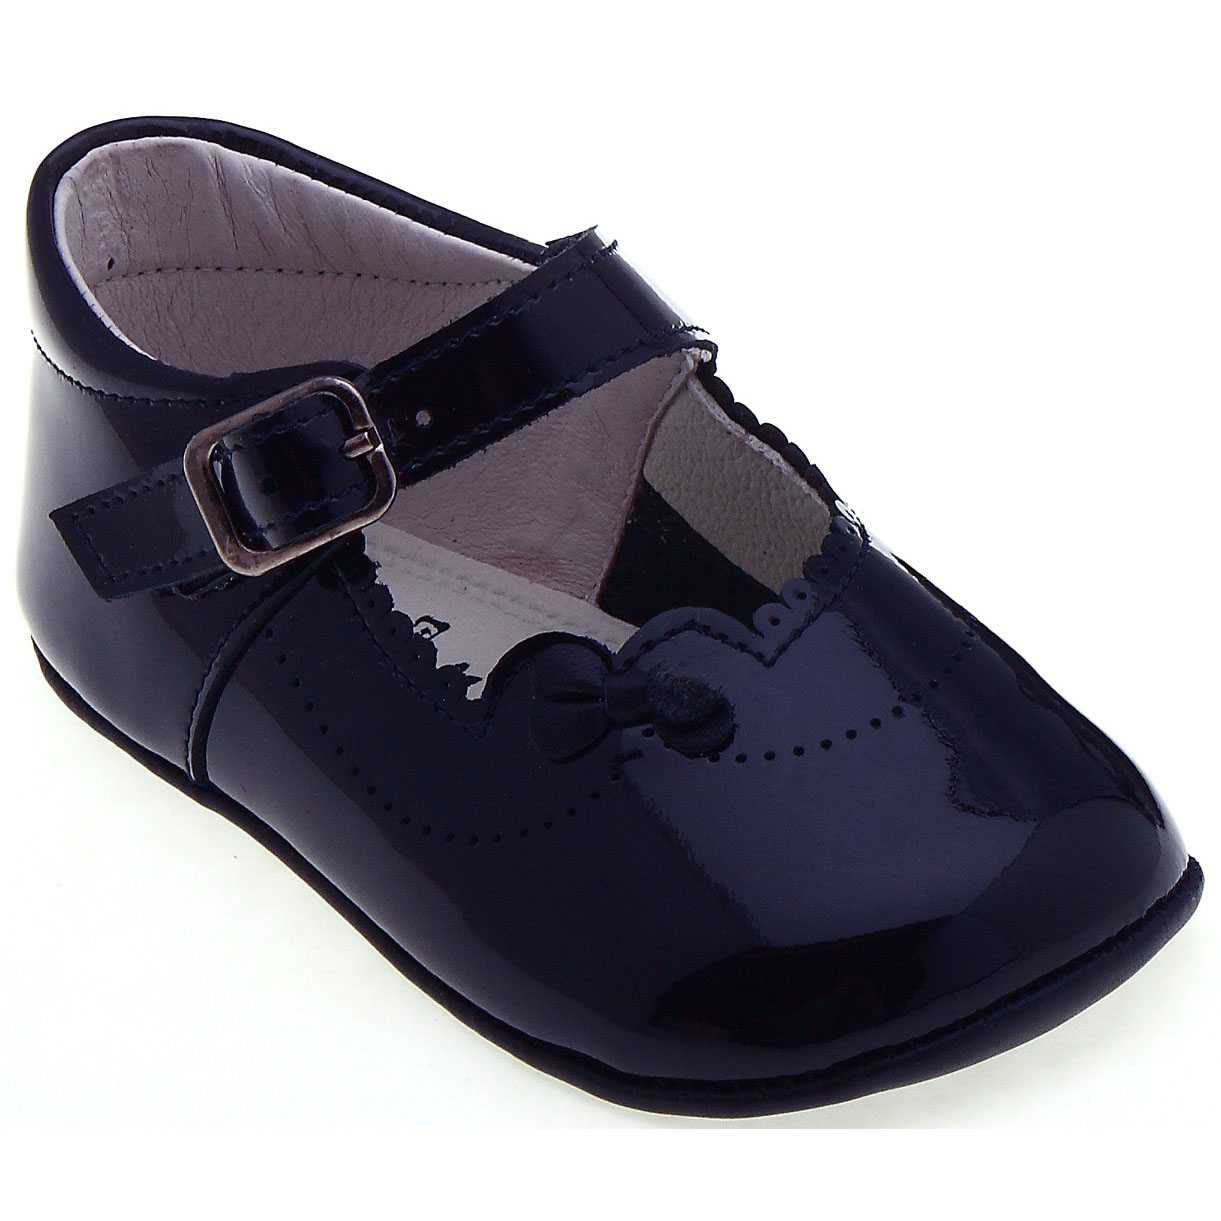 Baby Girls Navy Pram Shoes in Patent Leather